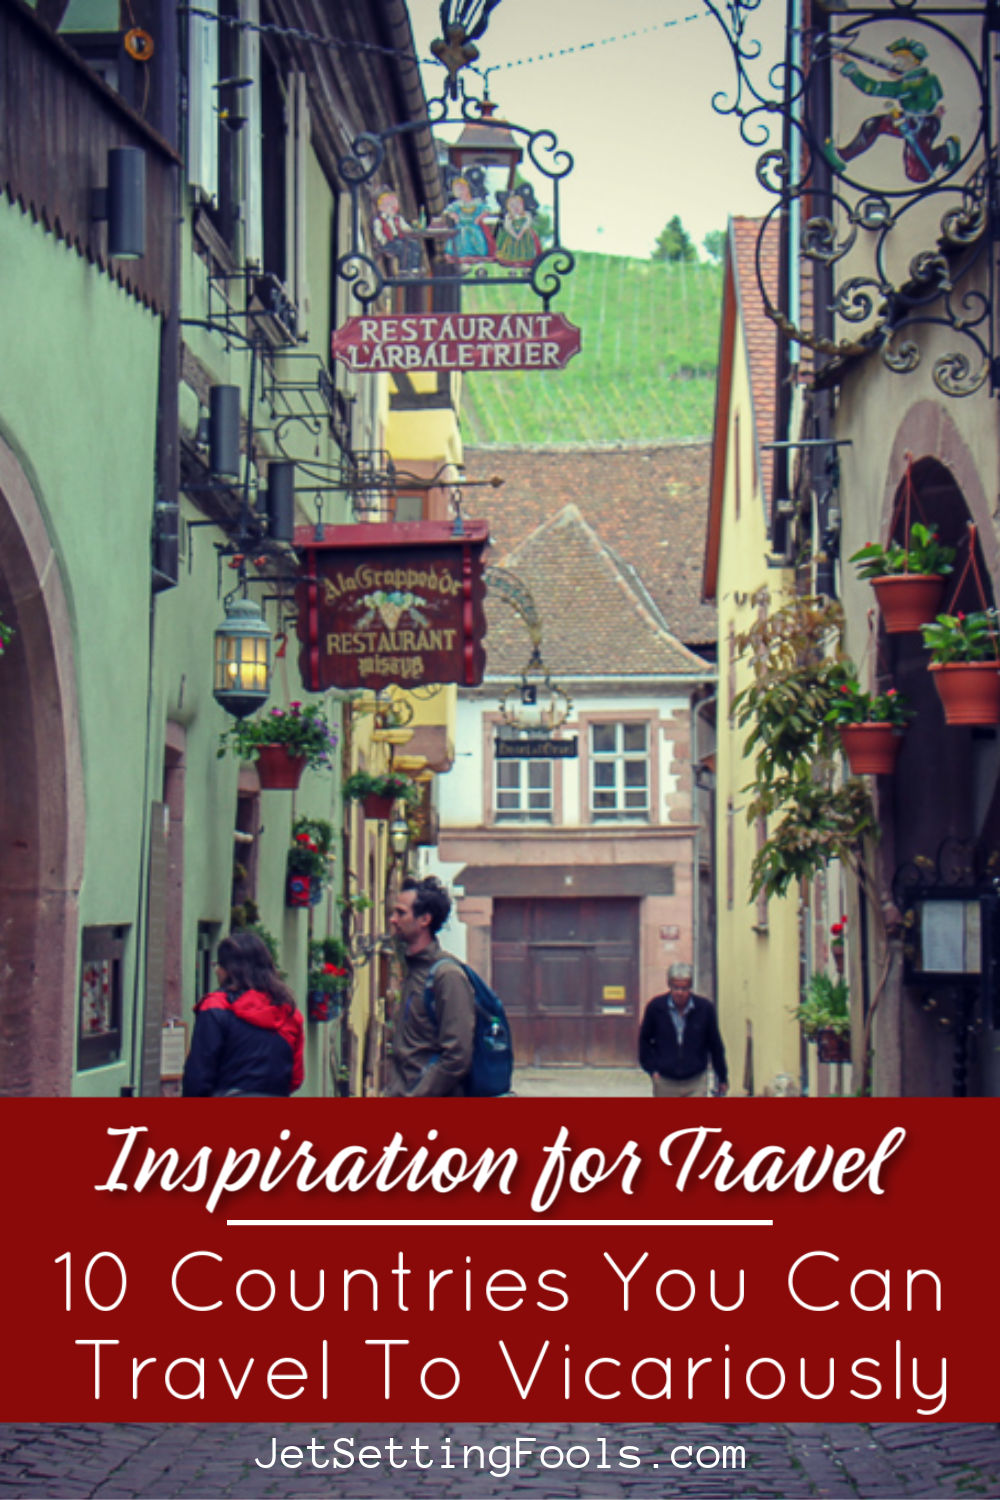 Inspiration for Travel by JetSettingFools.com